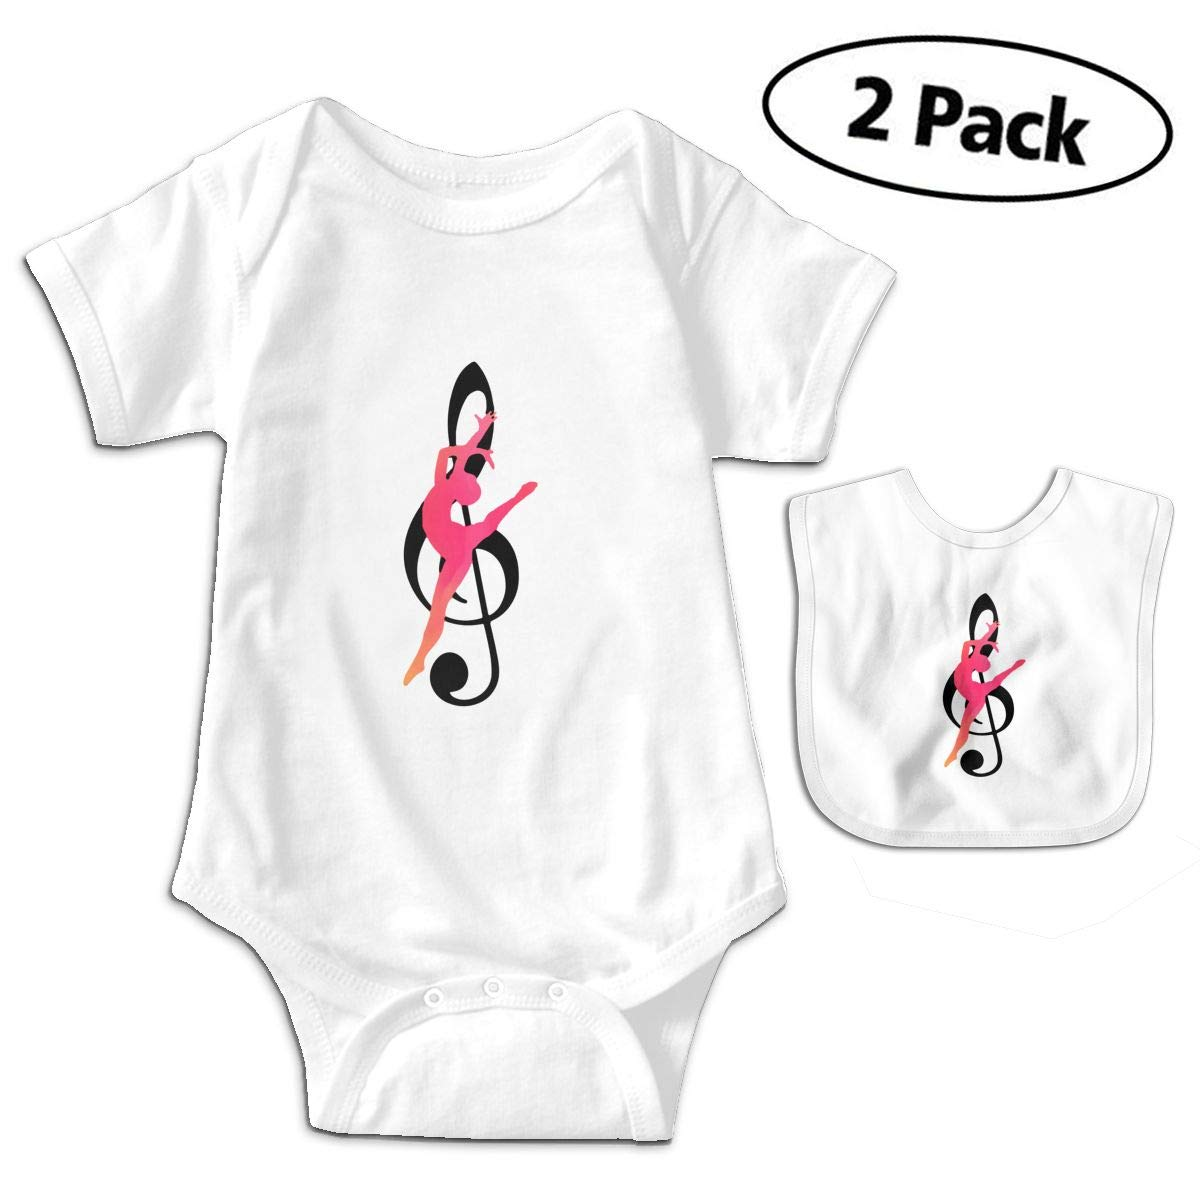 Harataki Guard Music Note Infant Baby Boys Girls Short Sleeve Romper Bodysuit Outfit Clothes